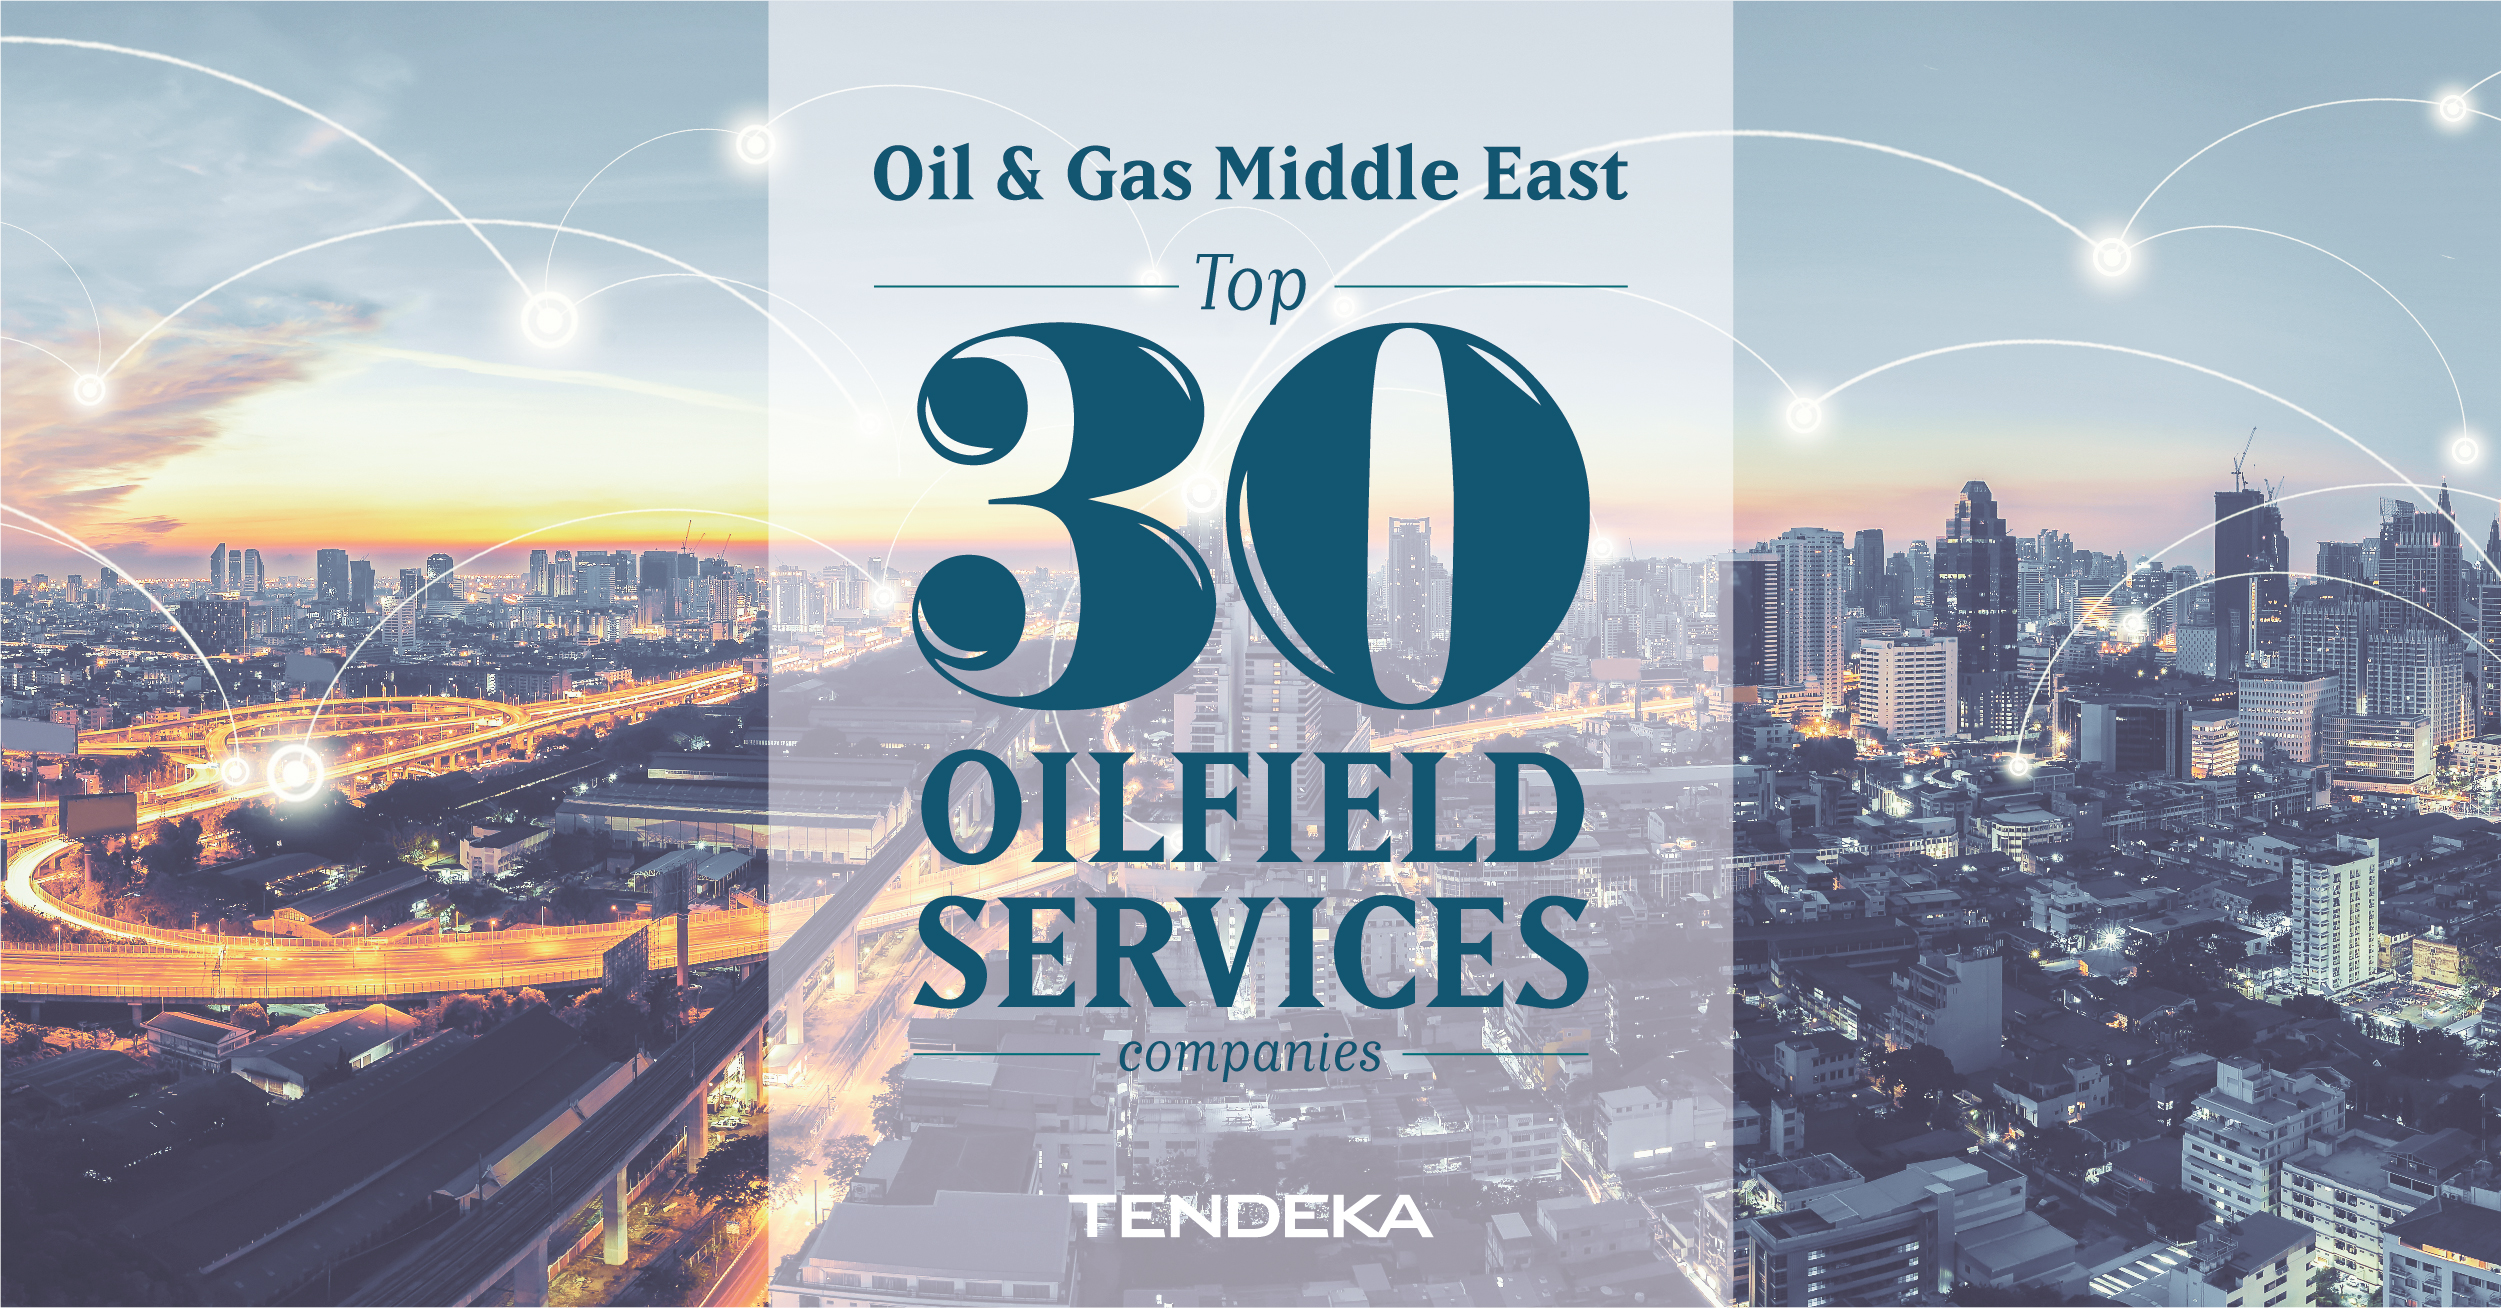 Tendeka in Top 30 oilfield services companies listing - Tendeka Website